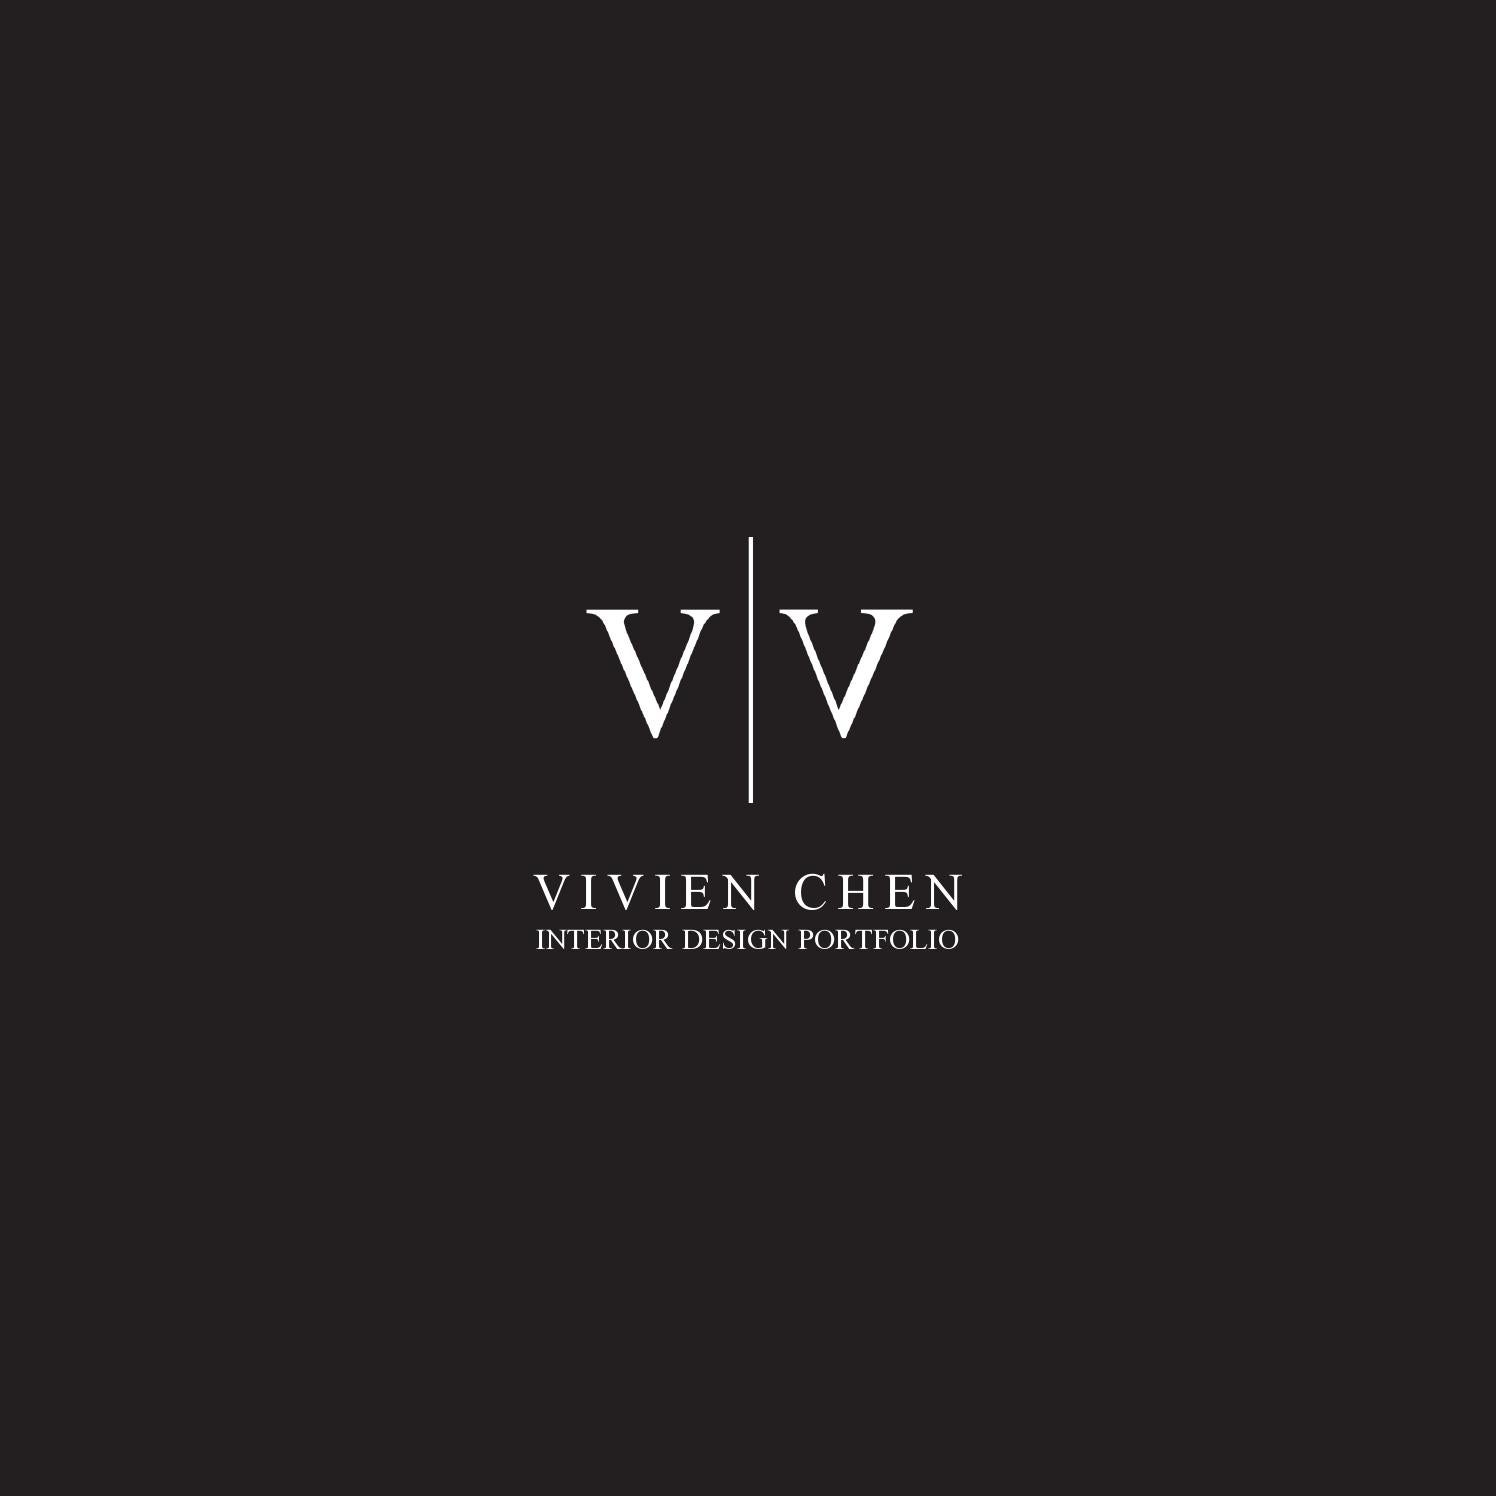 Vivien chen interior design portfolio by vivien chen issuu for Interior design names